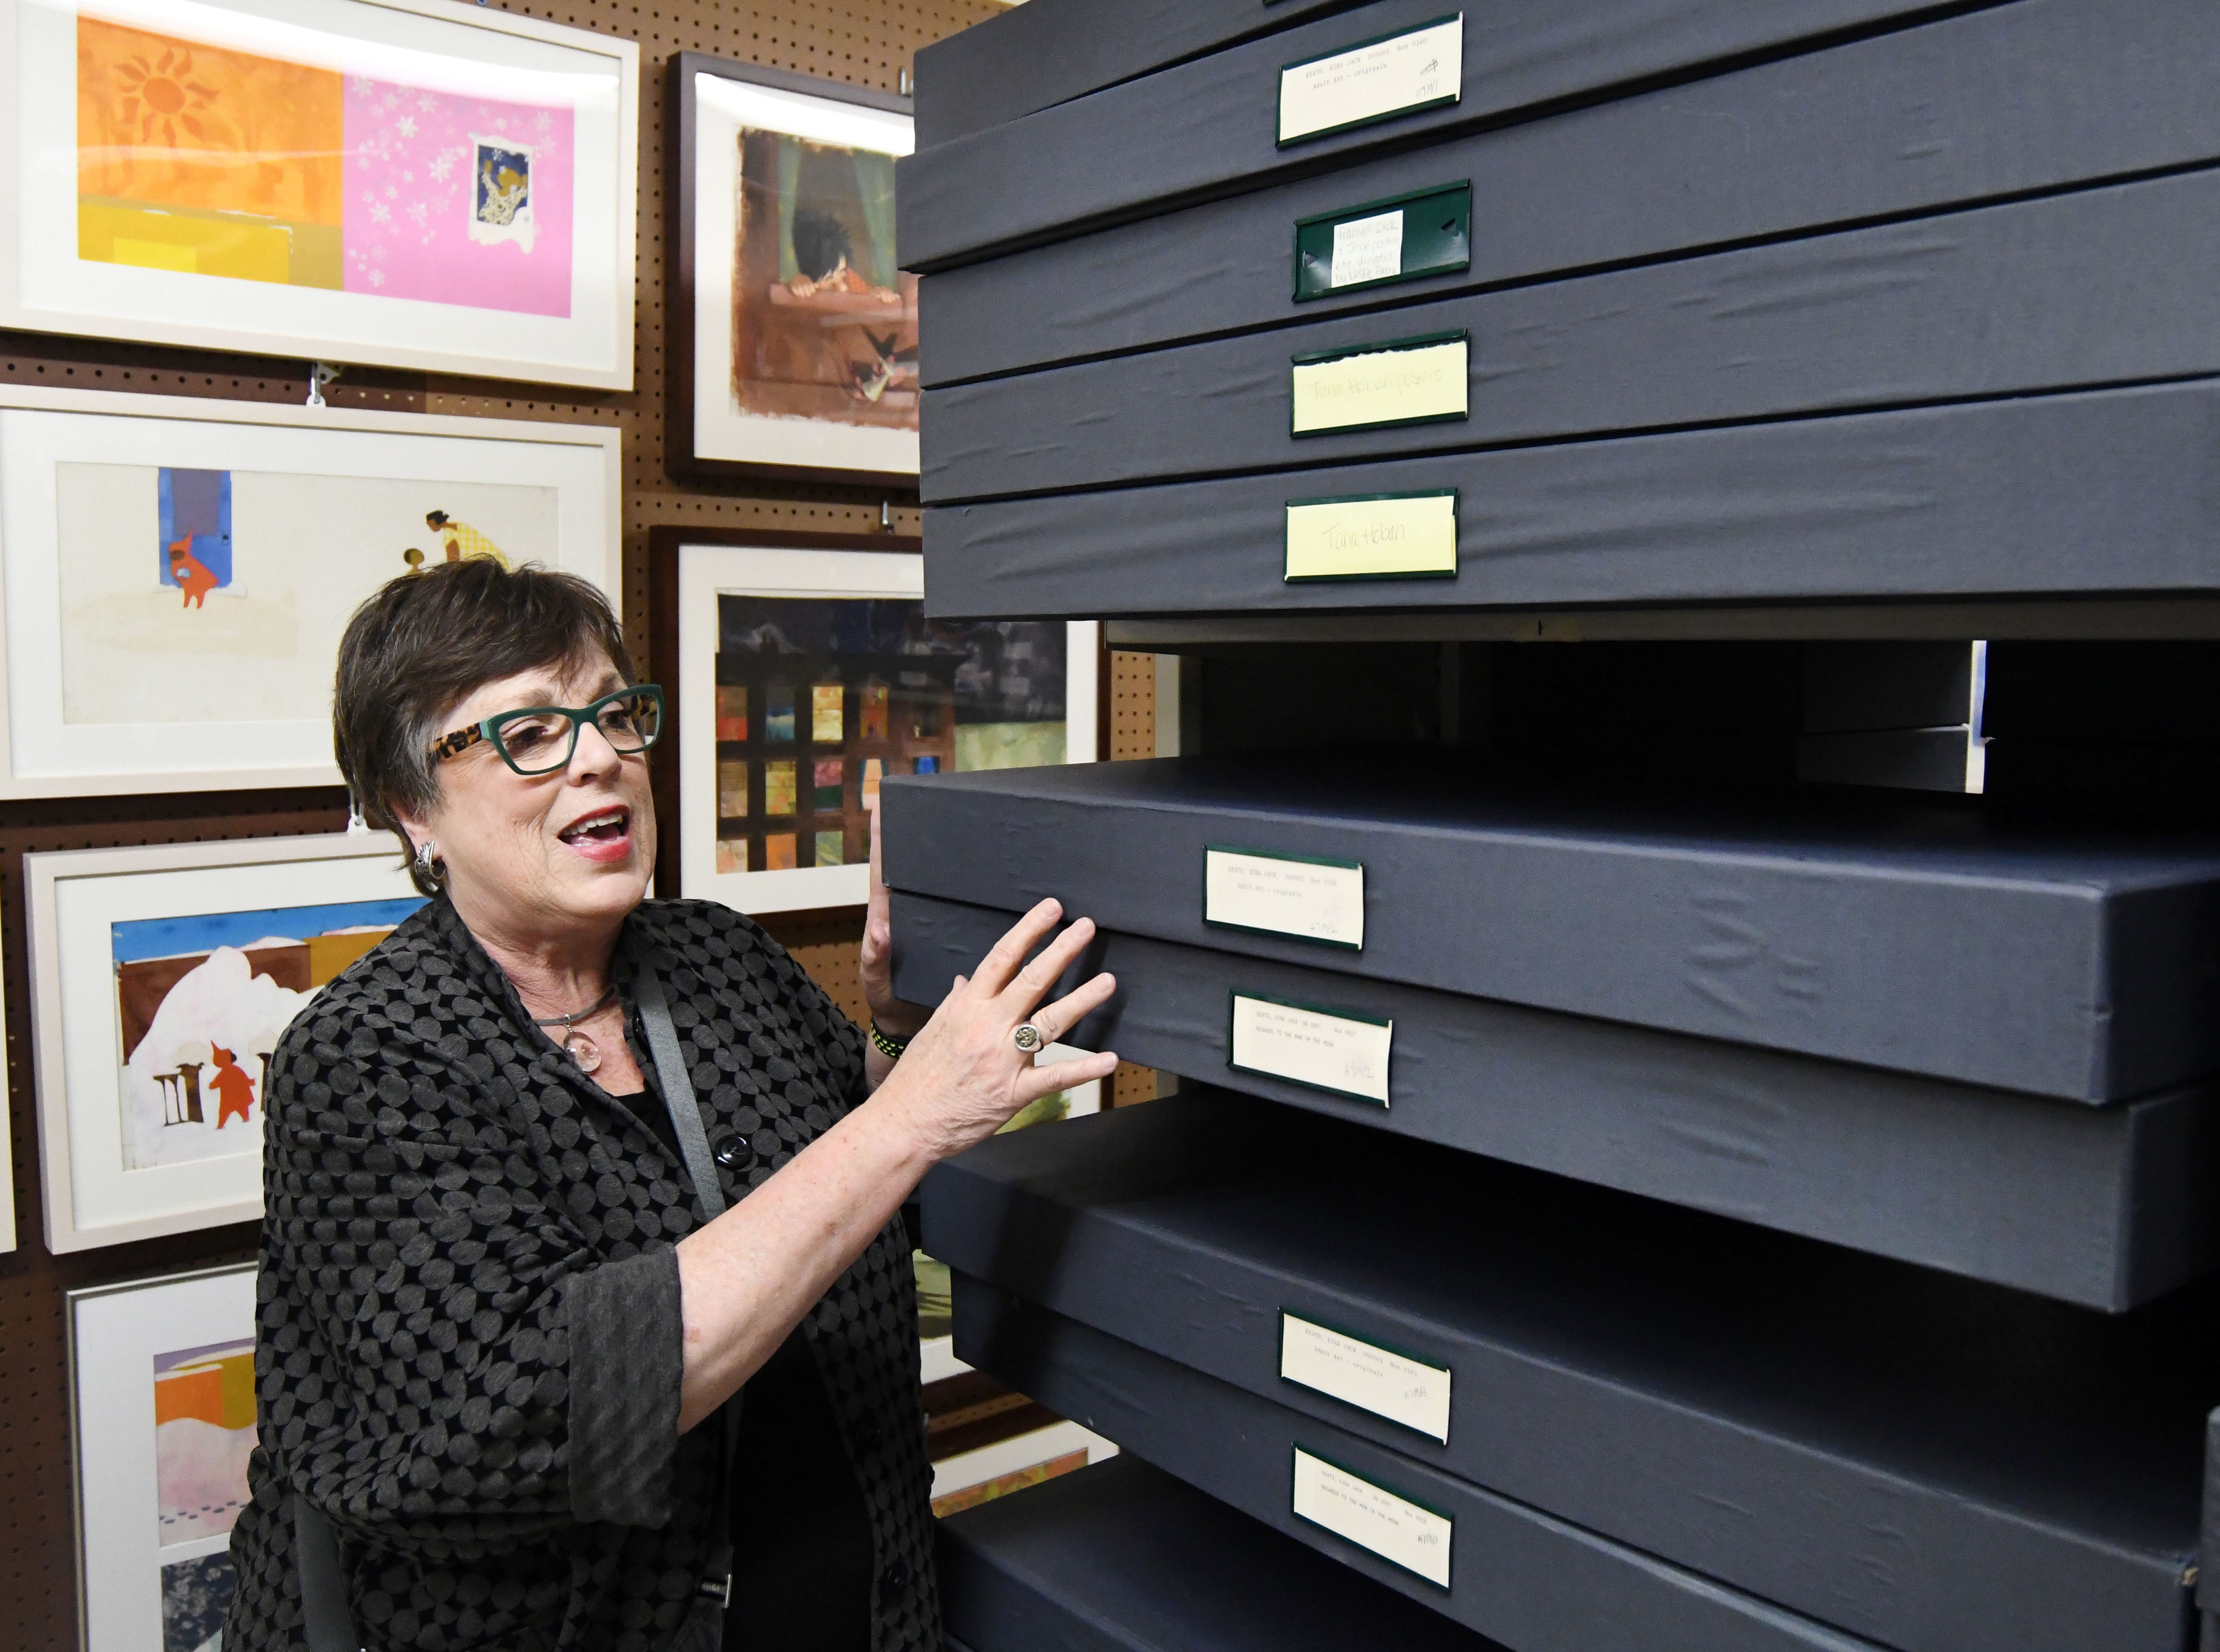 Curator of The de Grummond Children's Literature Collection at the University of Southern Mississippi Ellen Ruffin shows a collection of original artwork located in their archives at McCain Library. The collection is one of North America's leading research centers in the field of children's literature.